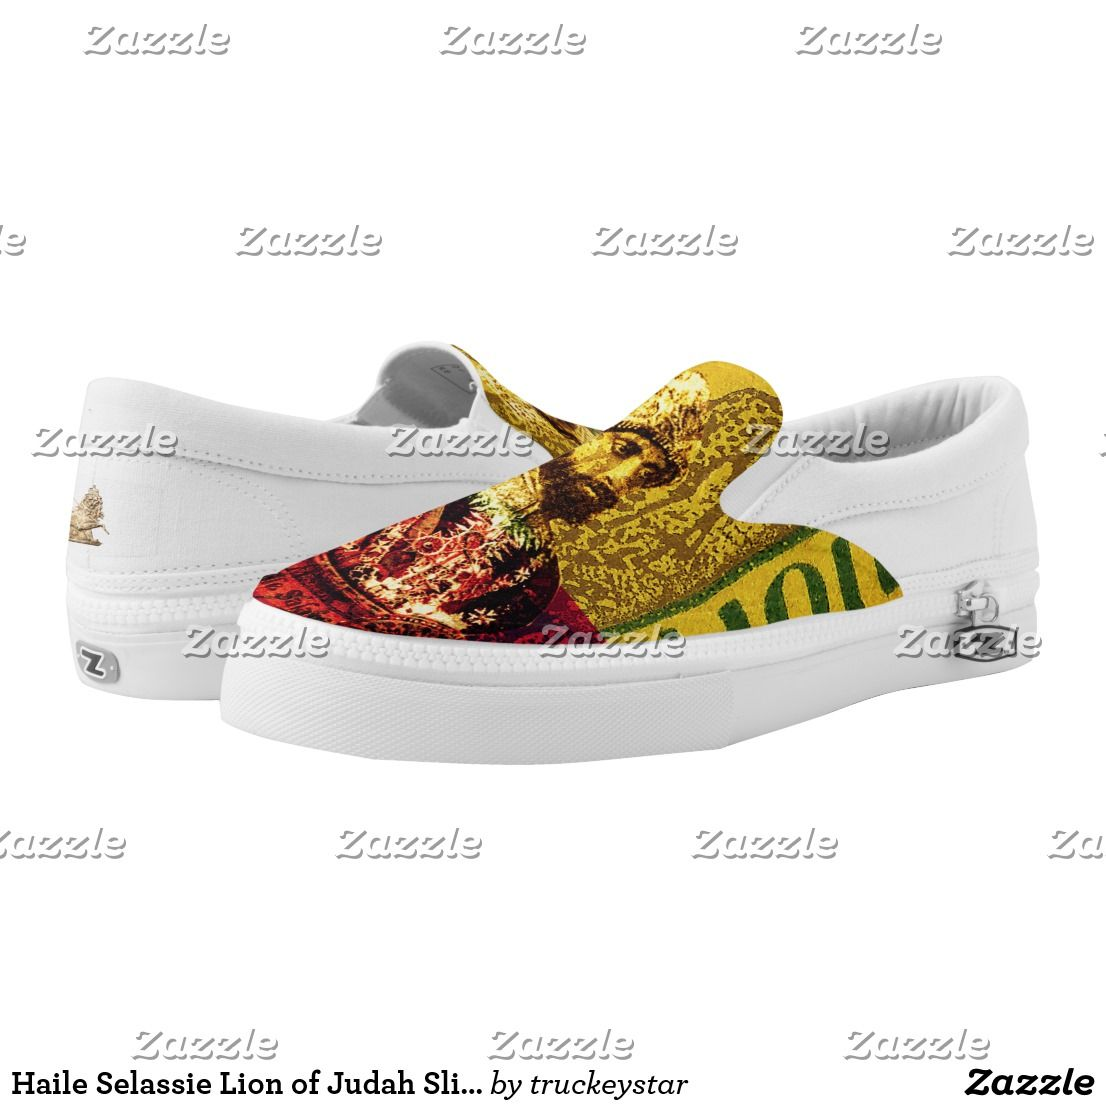 reputable site cf291 e963a Jamaica Flag Low top Lace Up Sneakers   Zazzle.com